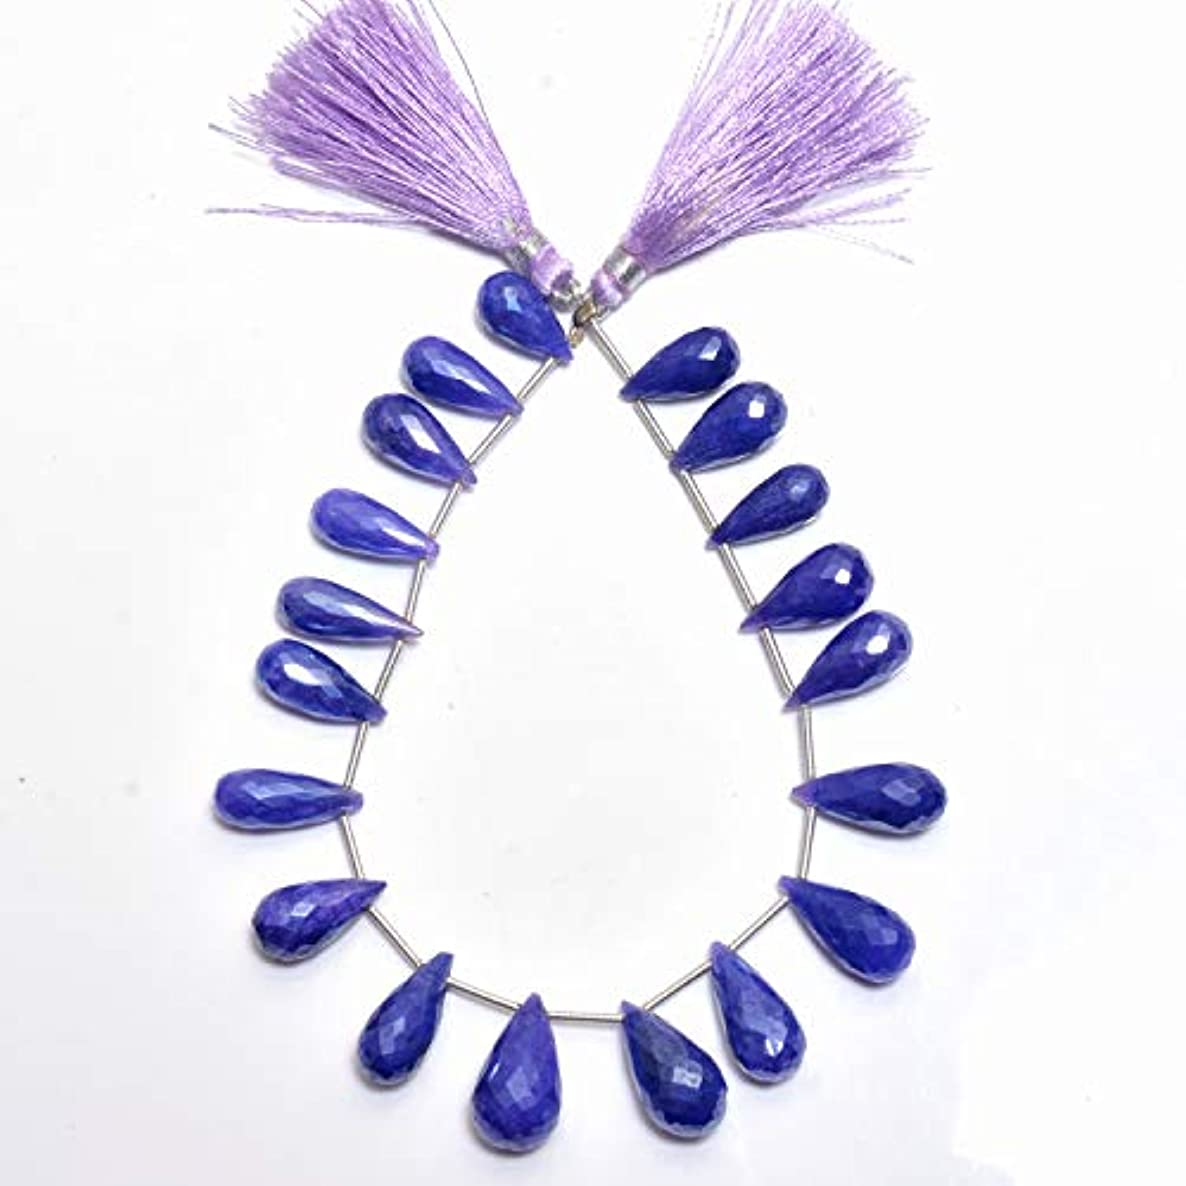 Natural Purple Quartz (Coated), Listed by BESTINBEADS, AAA Quality Faceted Tear Drop Side Drill semi Precious Gemstone Bead Strand 4 inches Long.